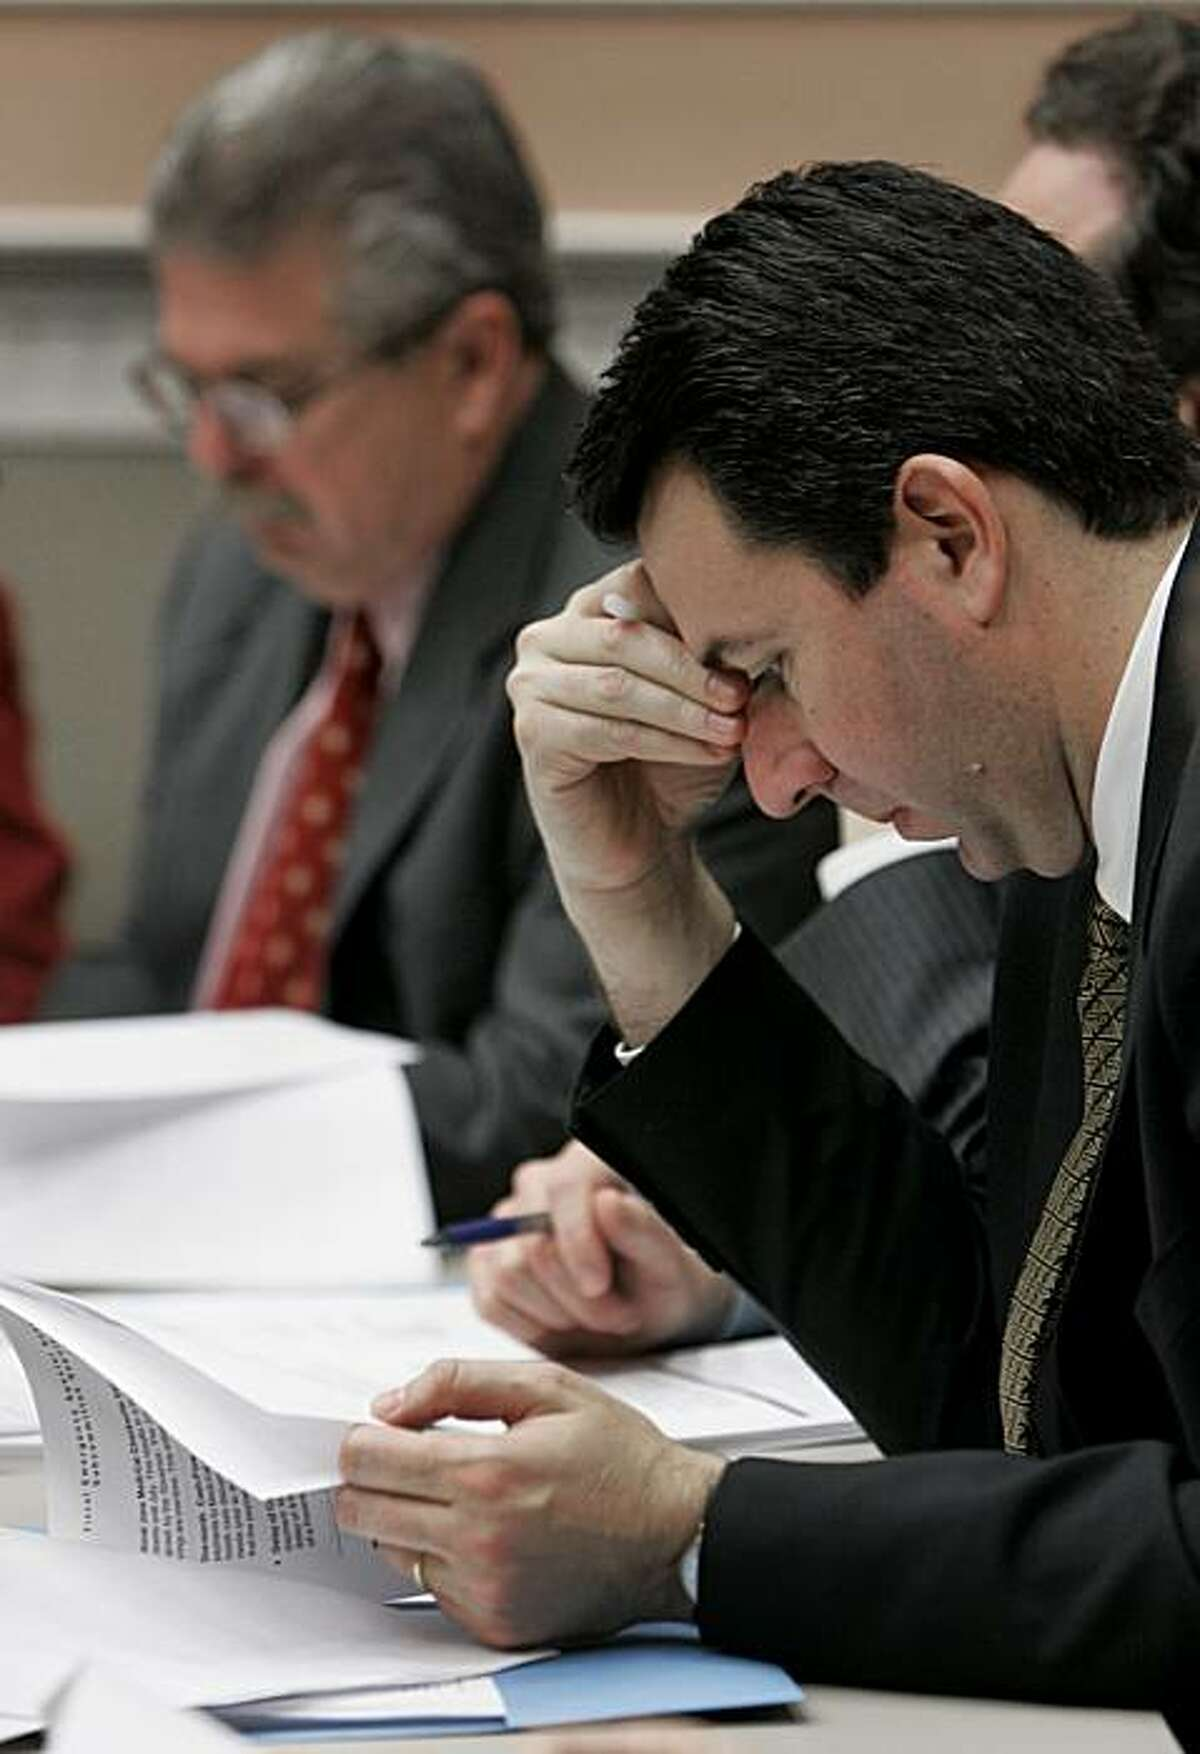 Assemblyman Hector de La Torre, D-South Gate, looks over briefing papers on the state budget during a Assembly Budget Committee hearing, at the Capitol in Sacramento, Calif., Thursday, Feb. 14, 2008. The committee approved a package of bills to cut $3.3 billion in the current state budget. (AP Photo/Rich Pedroncelli)